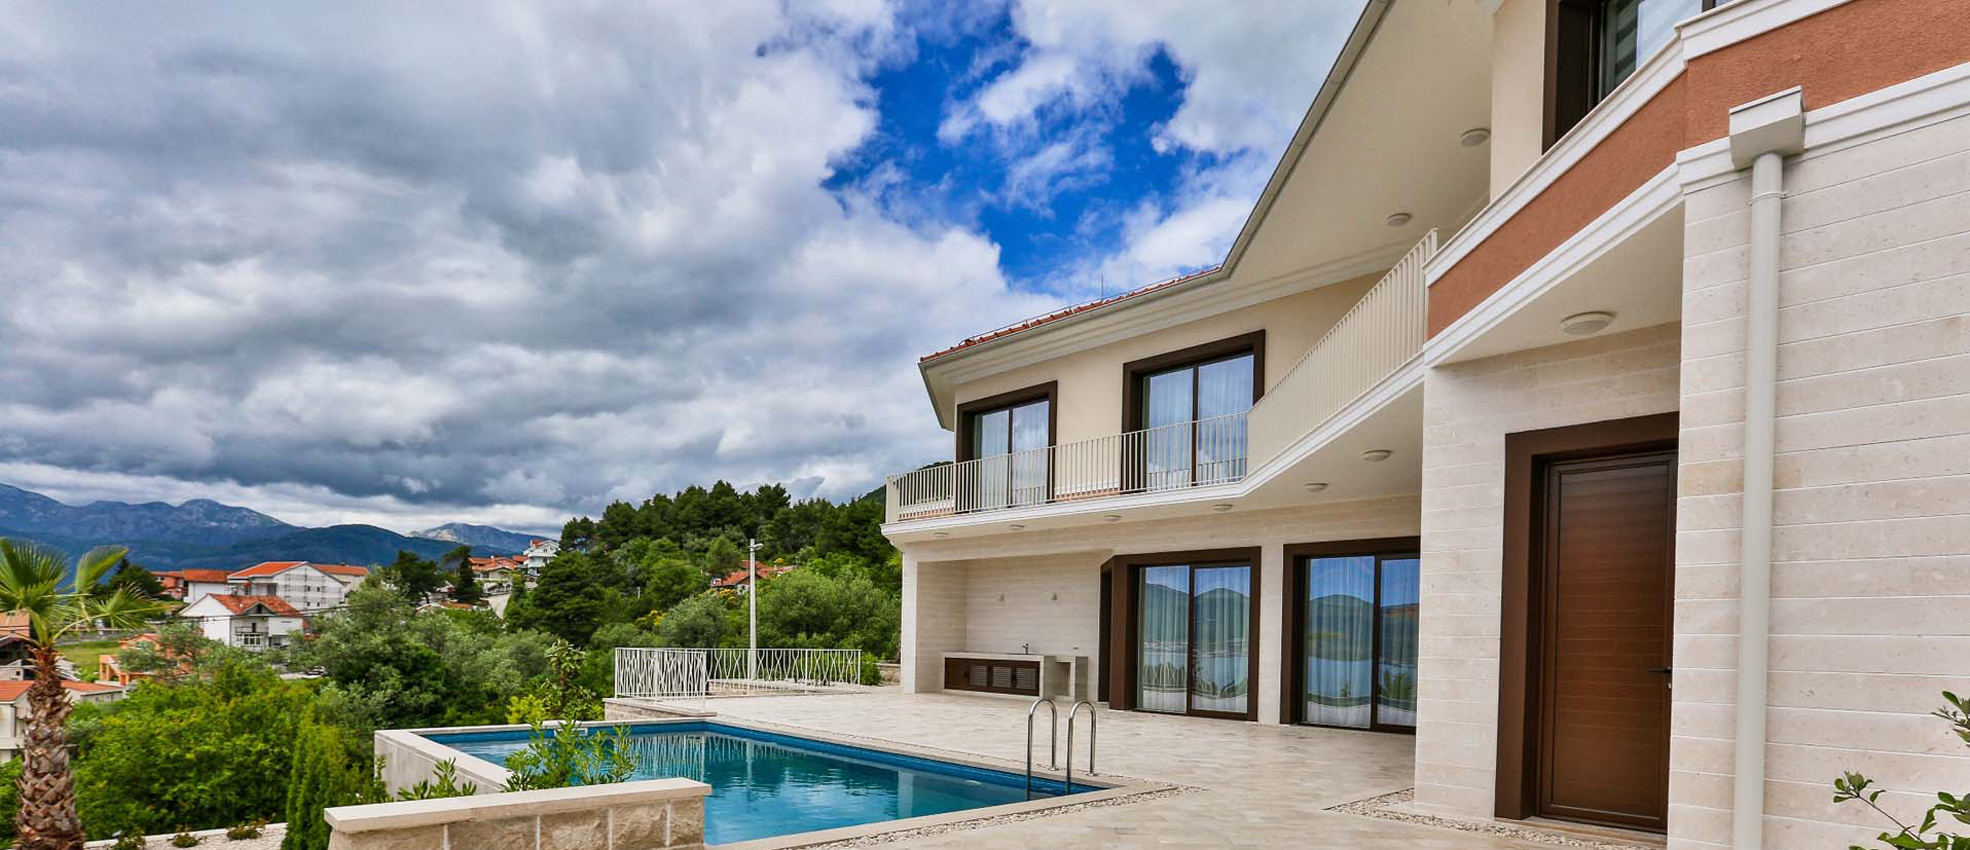 Modern villa in popular location Tivat